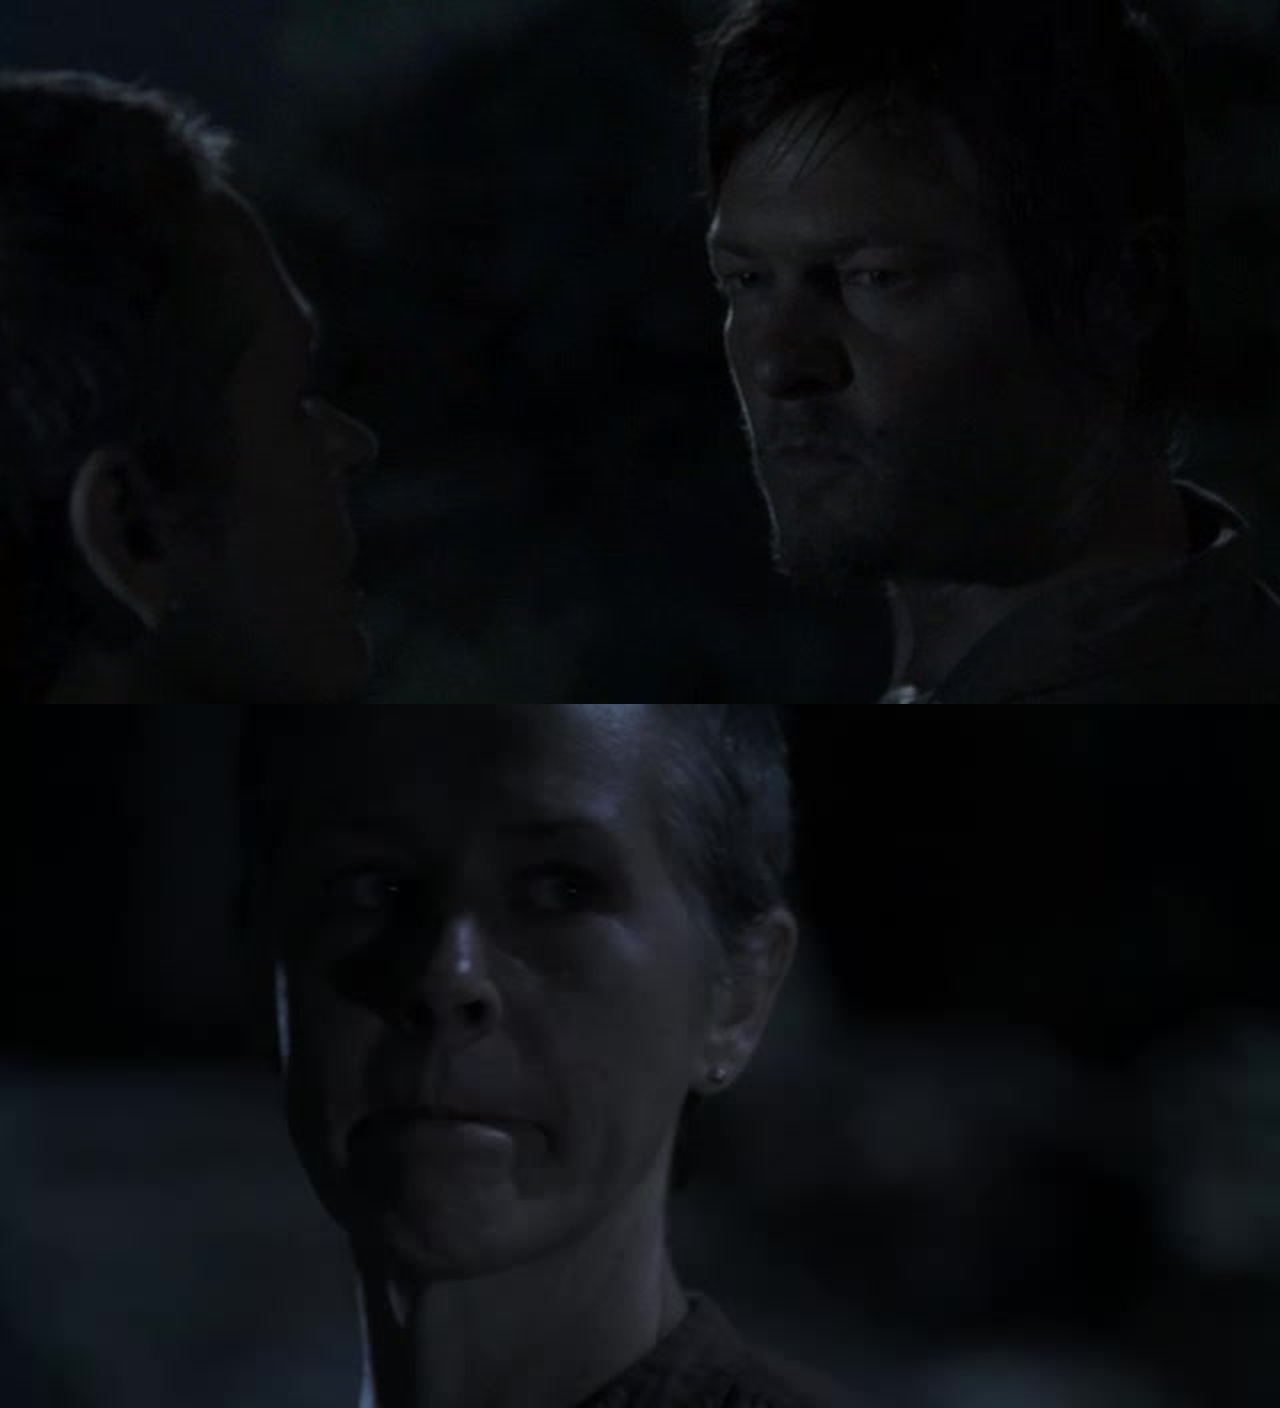 Daryl don't be like this. it's not your fault. don't push everyone away.